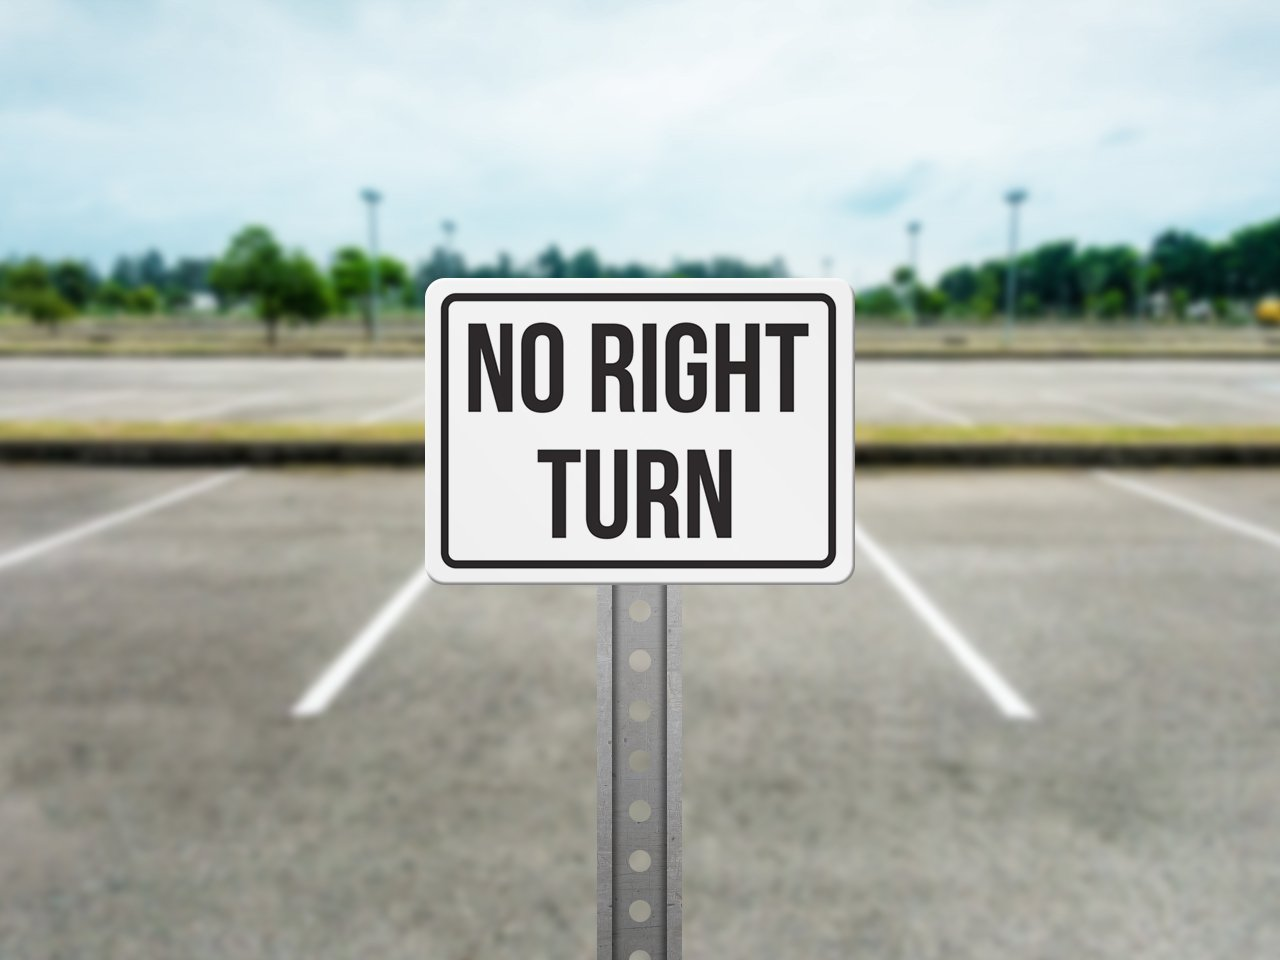 7.5x10.5 iCandy Products Inc No Right Turn No Parking Business Safety Traffic Signs Black Metal